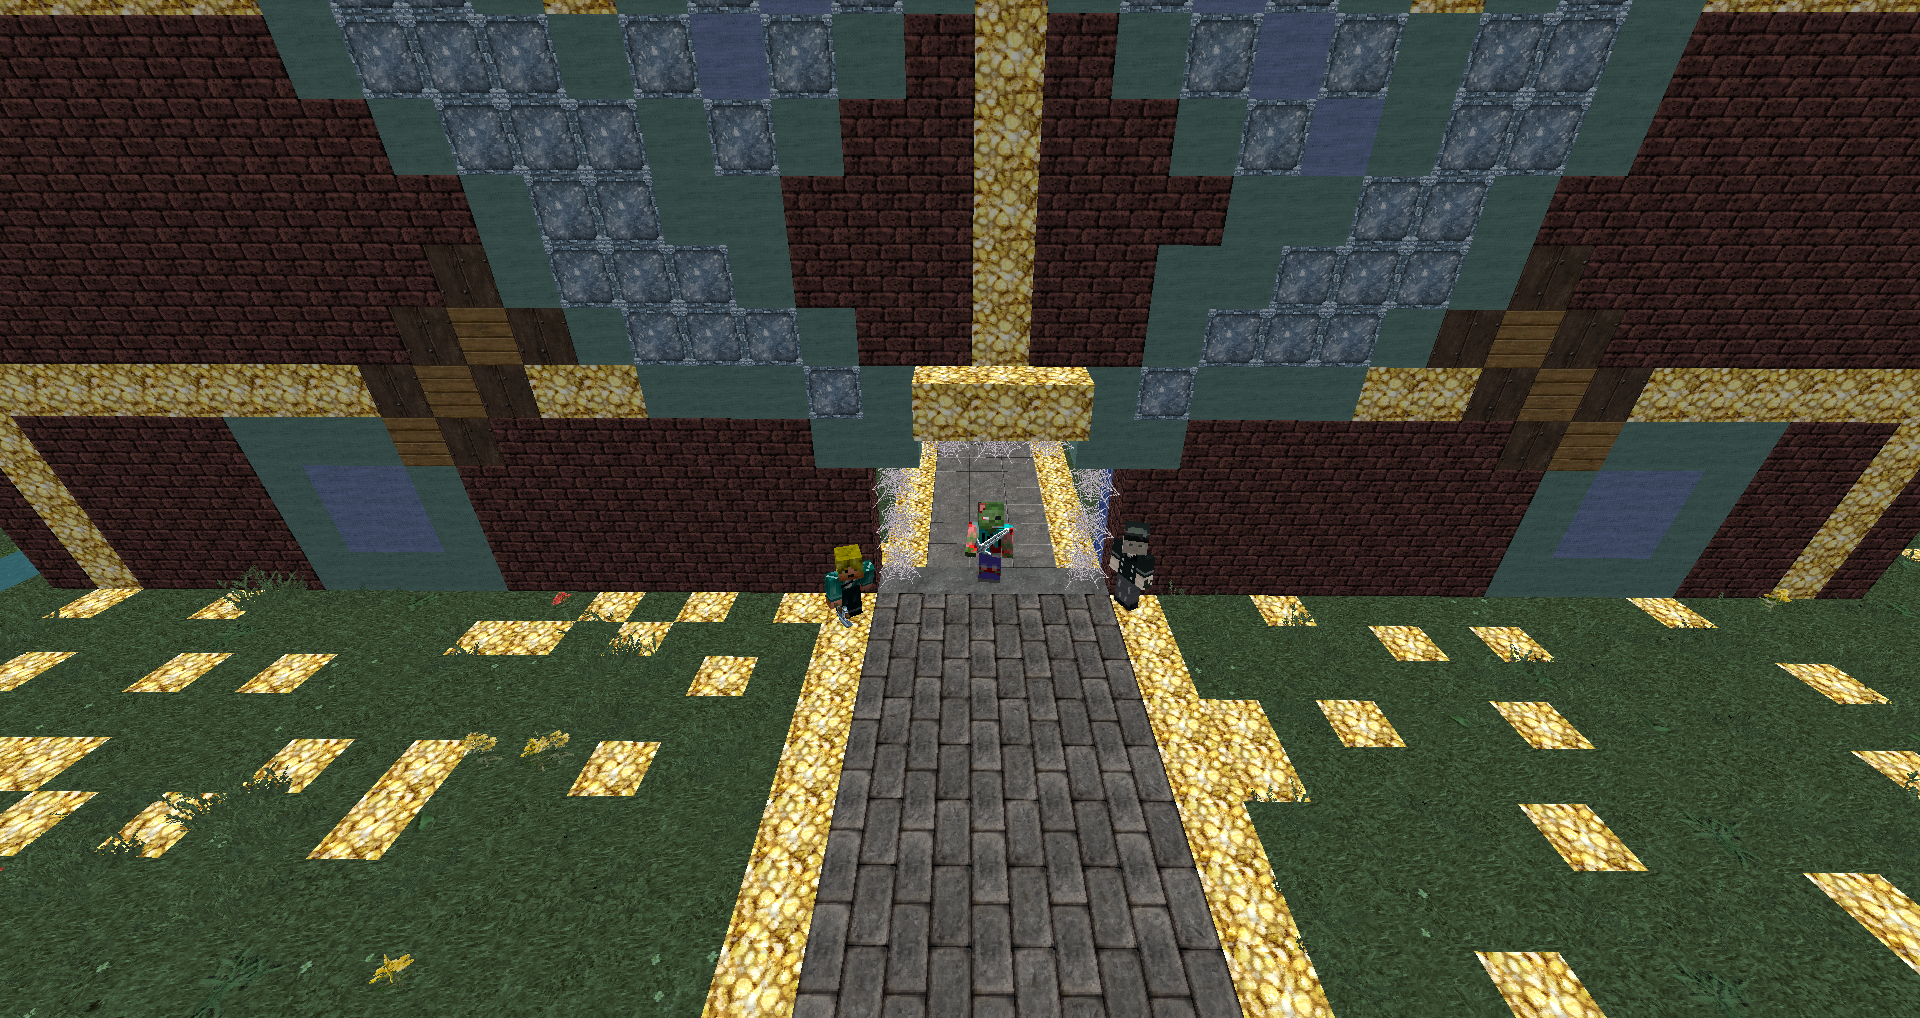 The front of our spawn